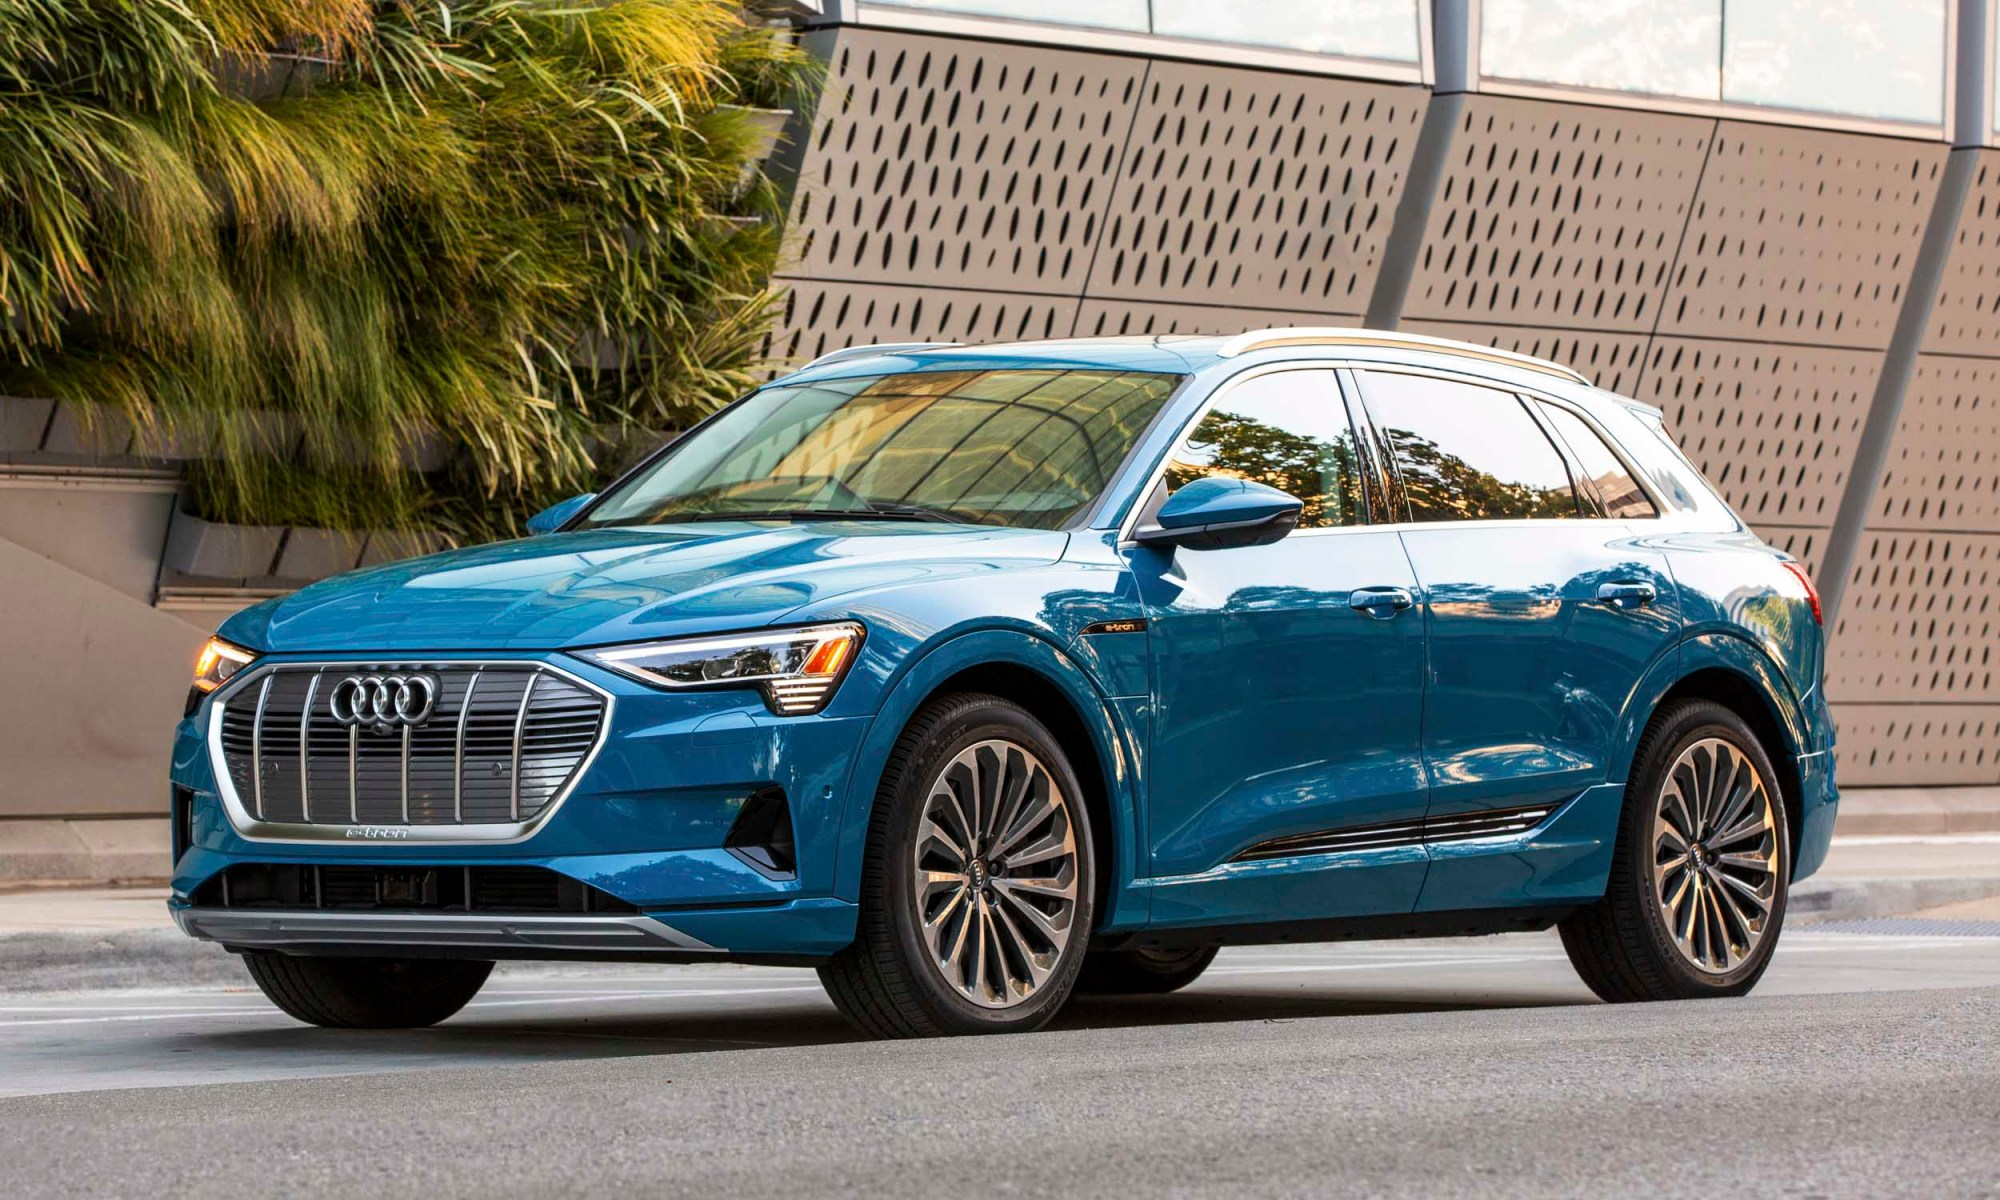 hight resolution of issue volkswagen group of america inc audi is recalling certain 2019 audi e tron vehicles